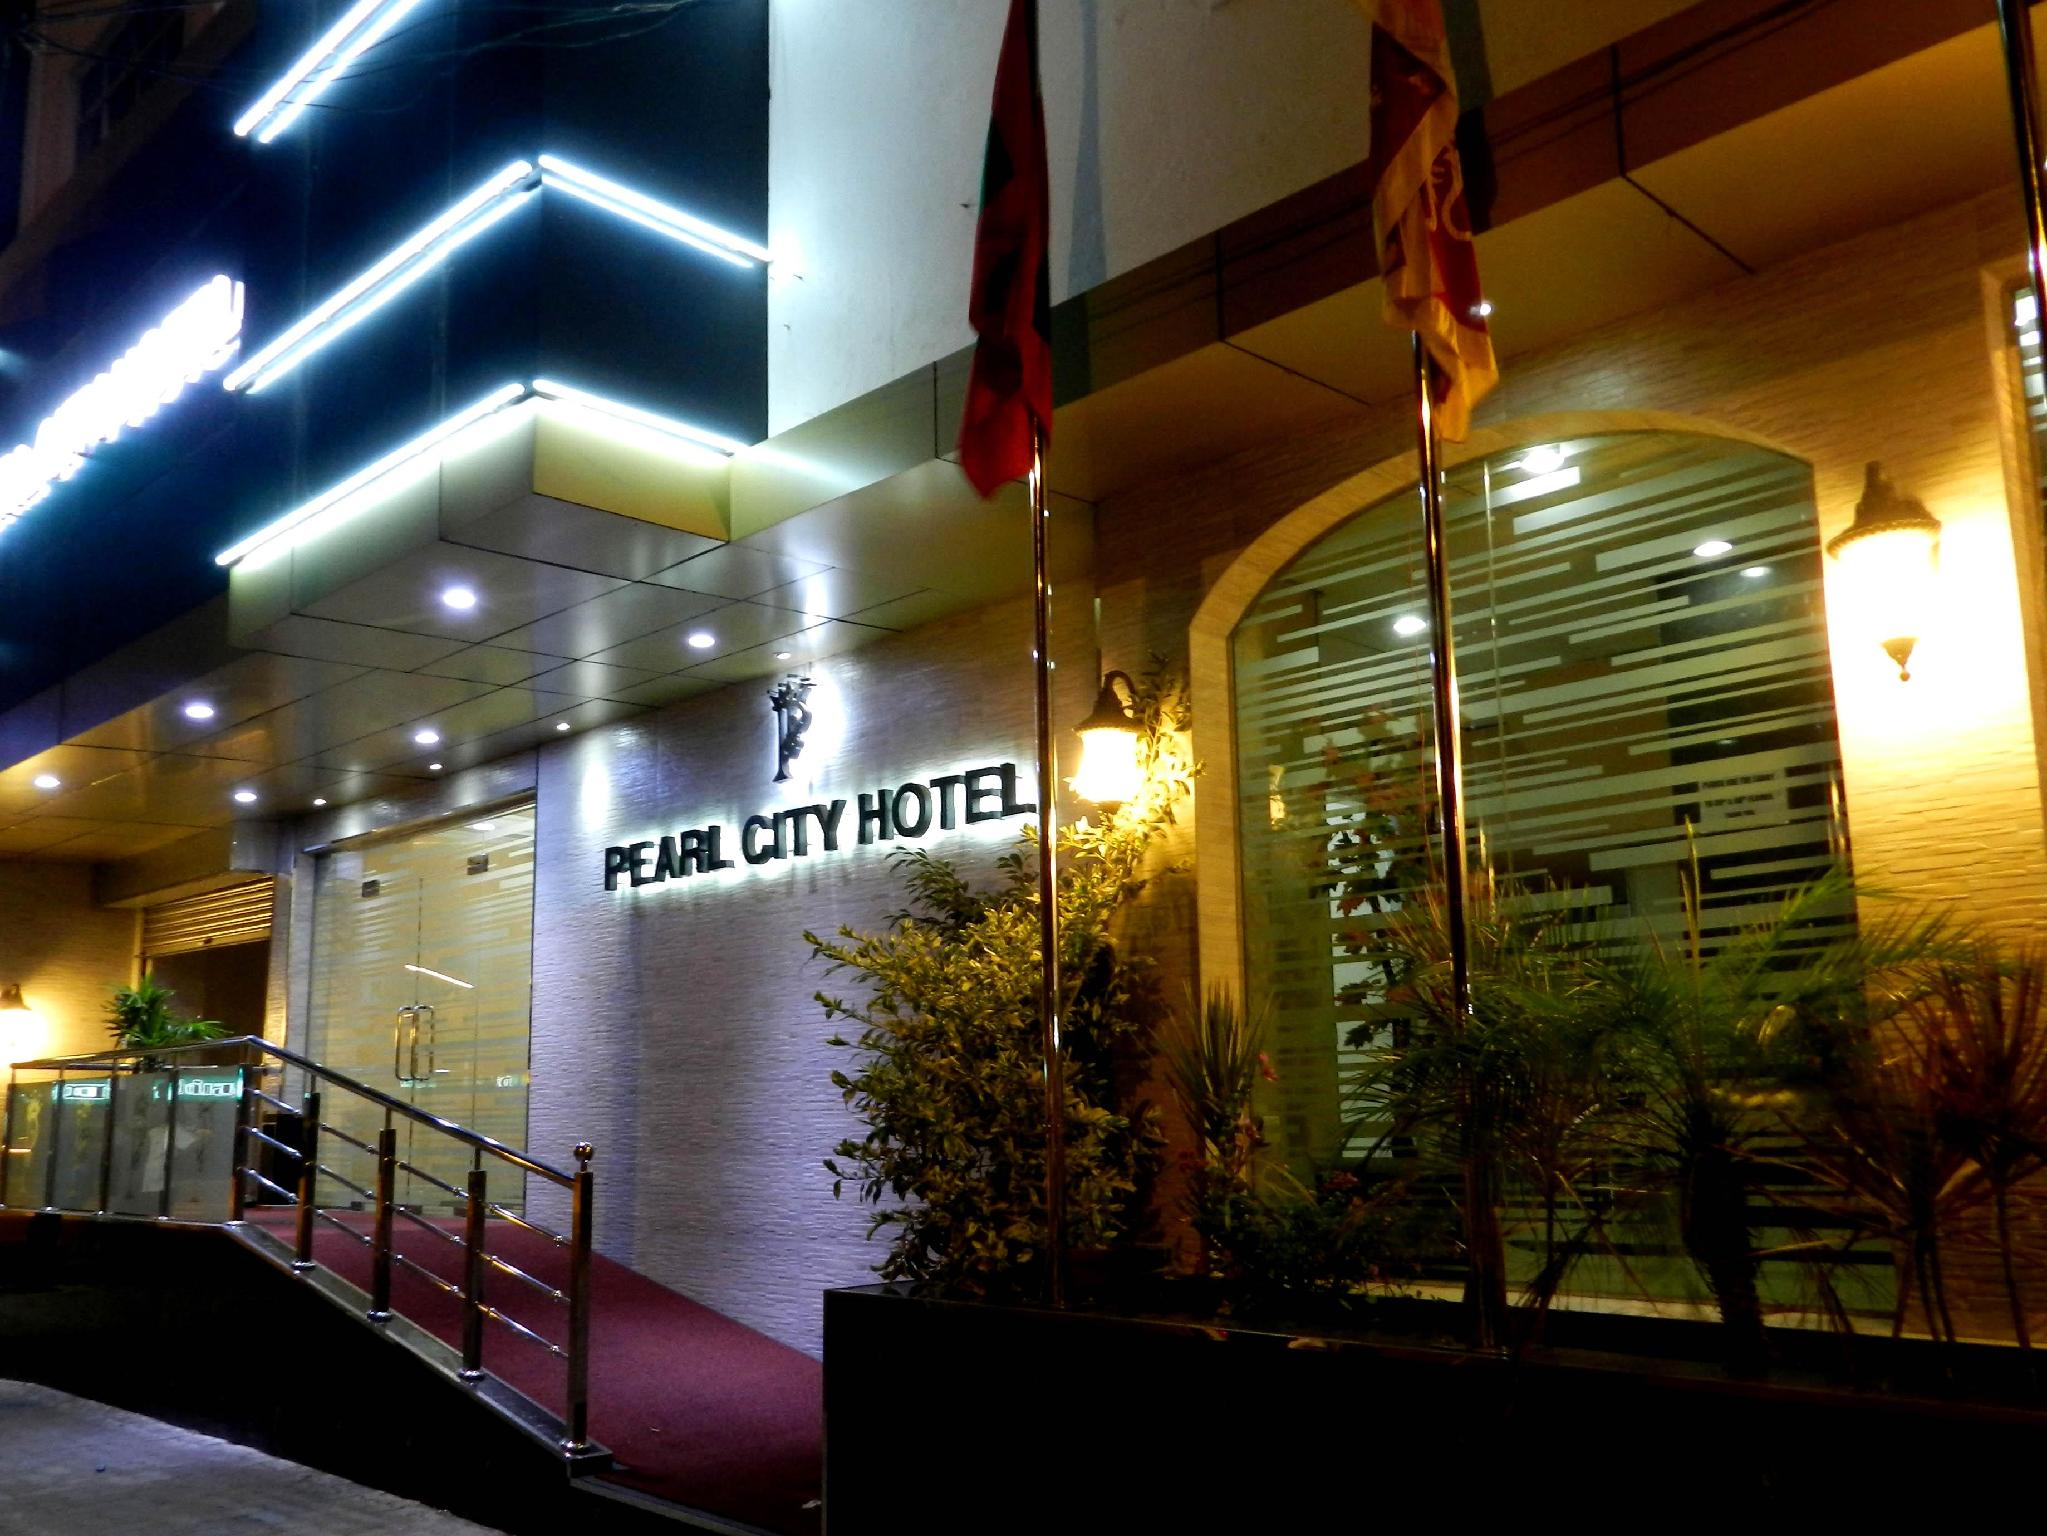 Pearl City Hotel Colombo - Exterior